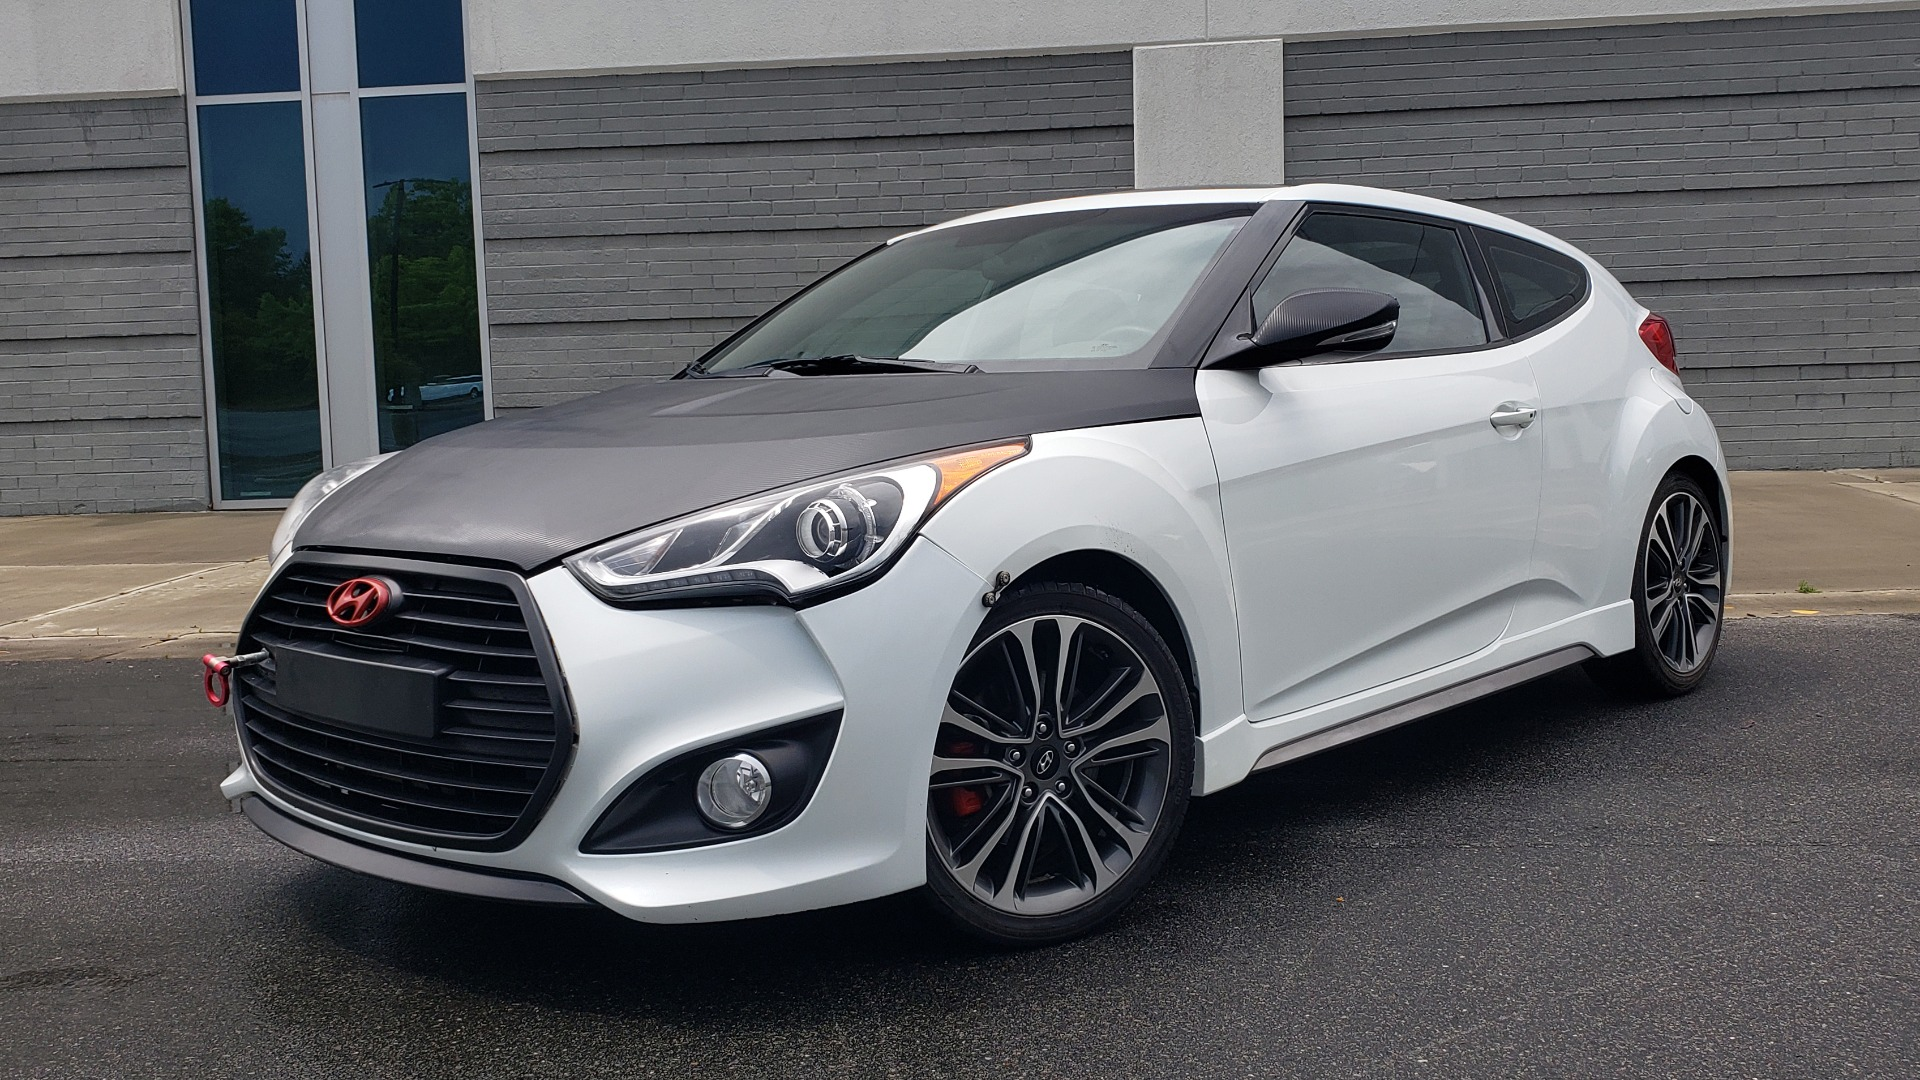 Used 2016 Hyundai VELOSTER 1.6L TURBO / 7-SPD ATUO / 3DR COUPE / NAV / PANO-ROOF for sale $13,995 at Formula Imports in Charlotte NC 28227 1